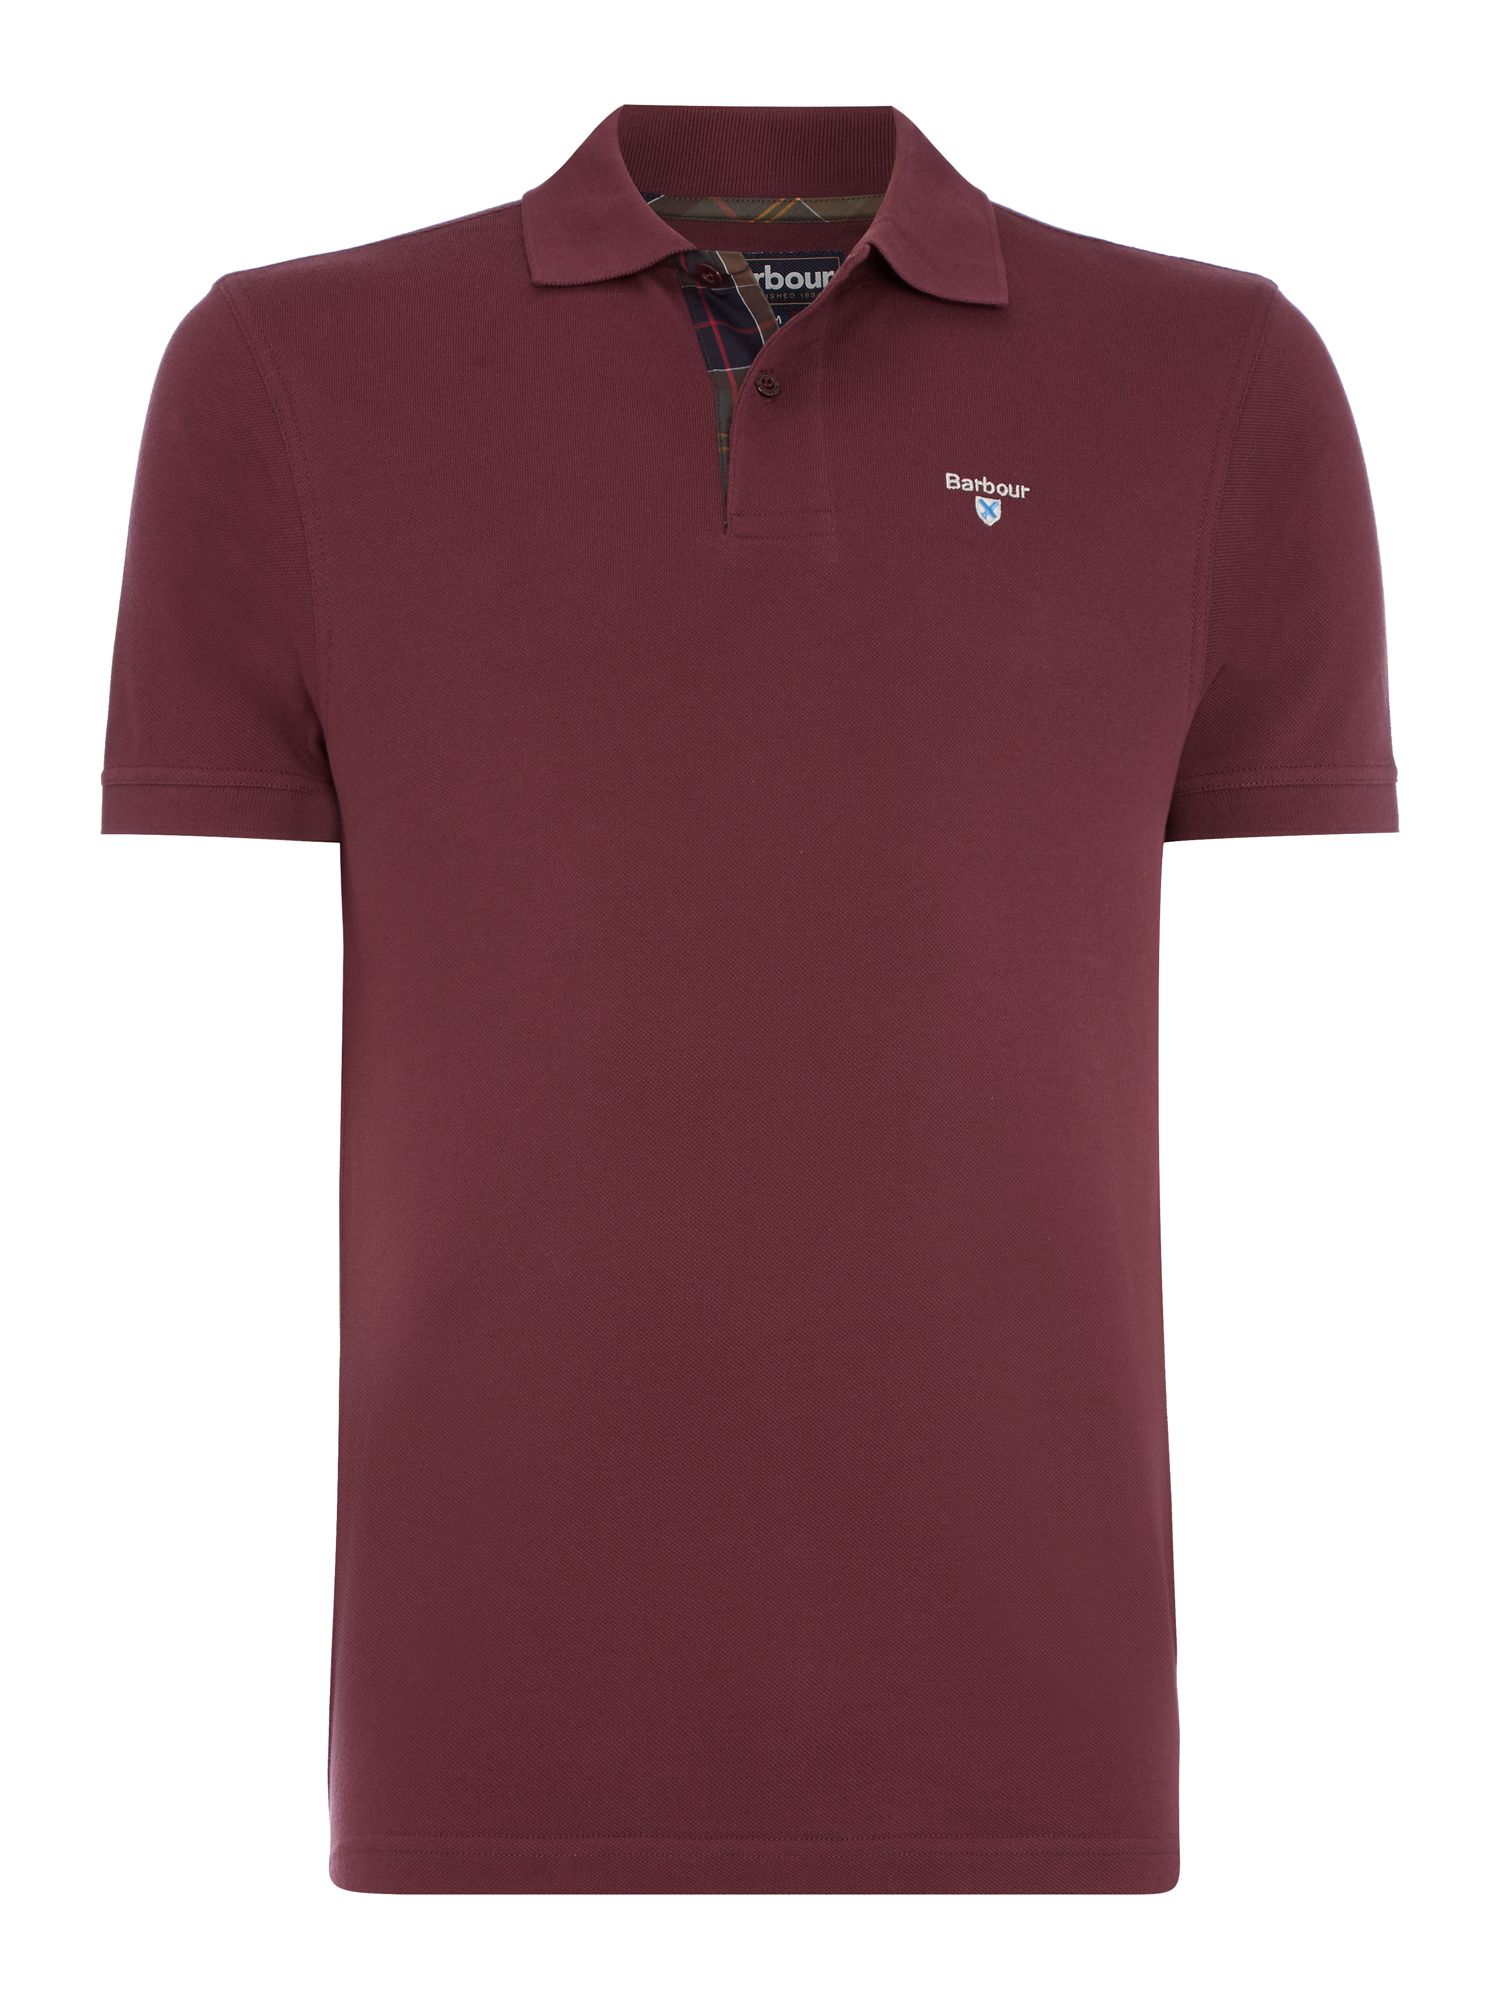 Men's Barbour Tartan Pique Polo, Merlot